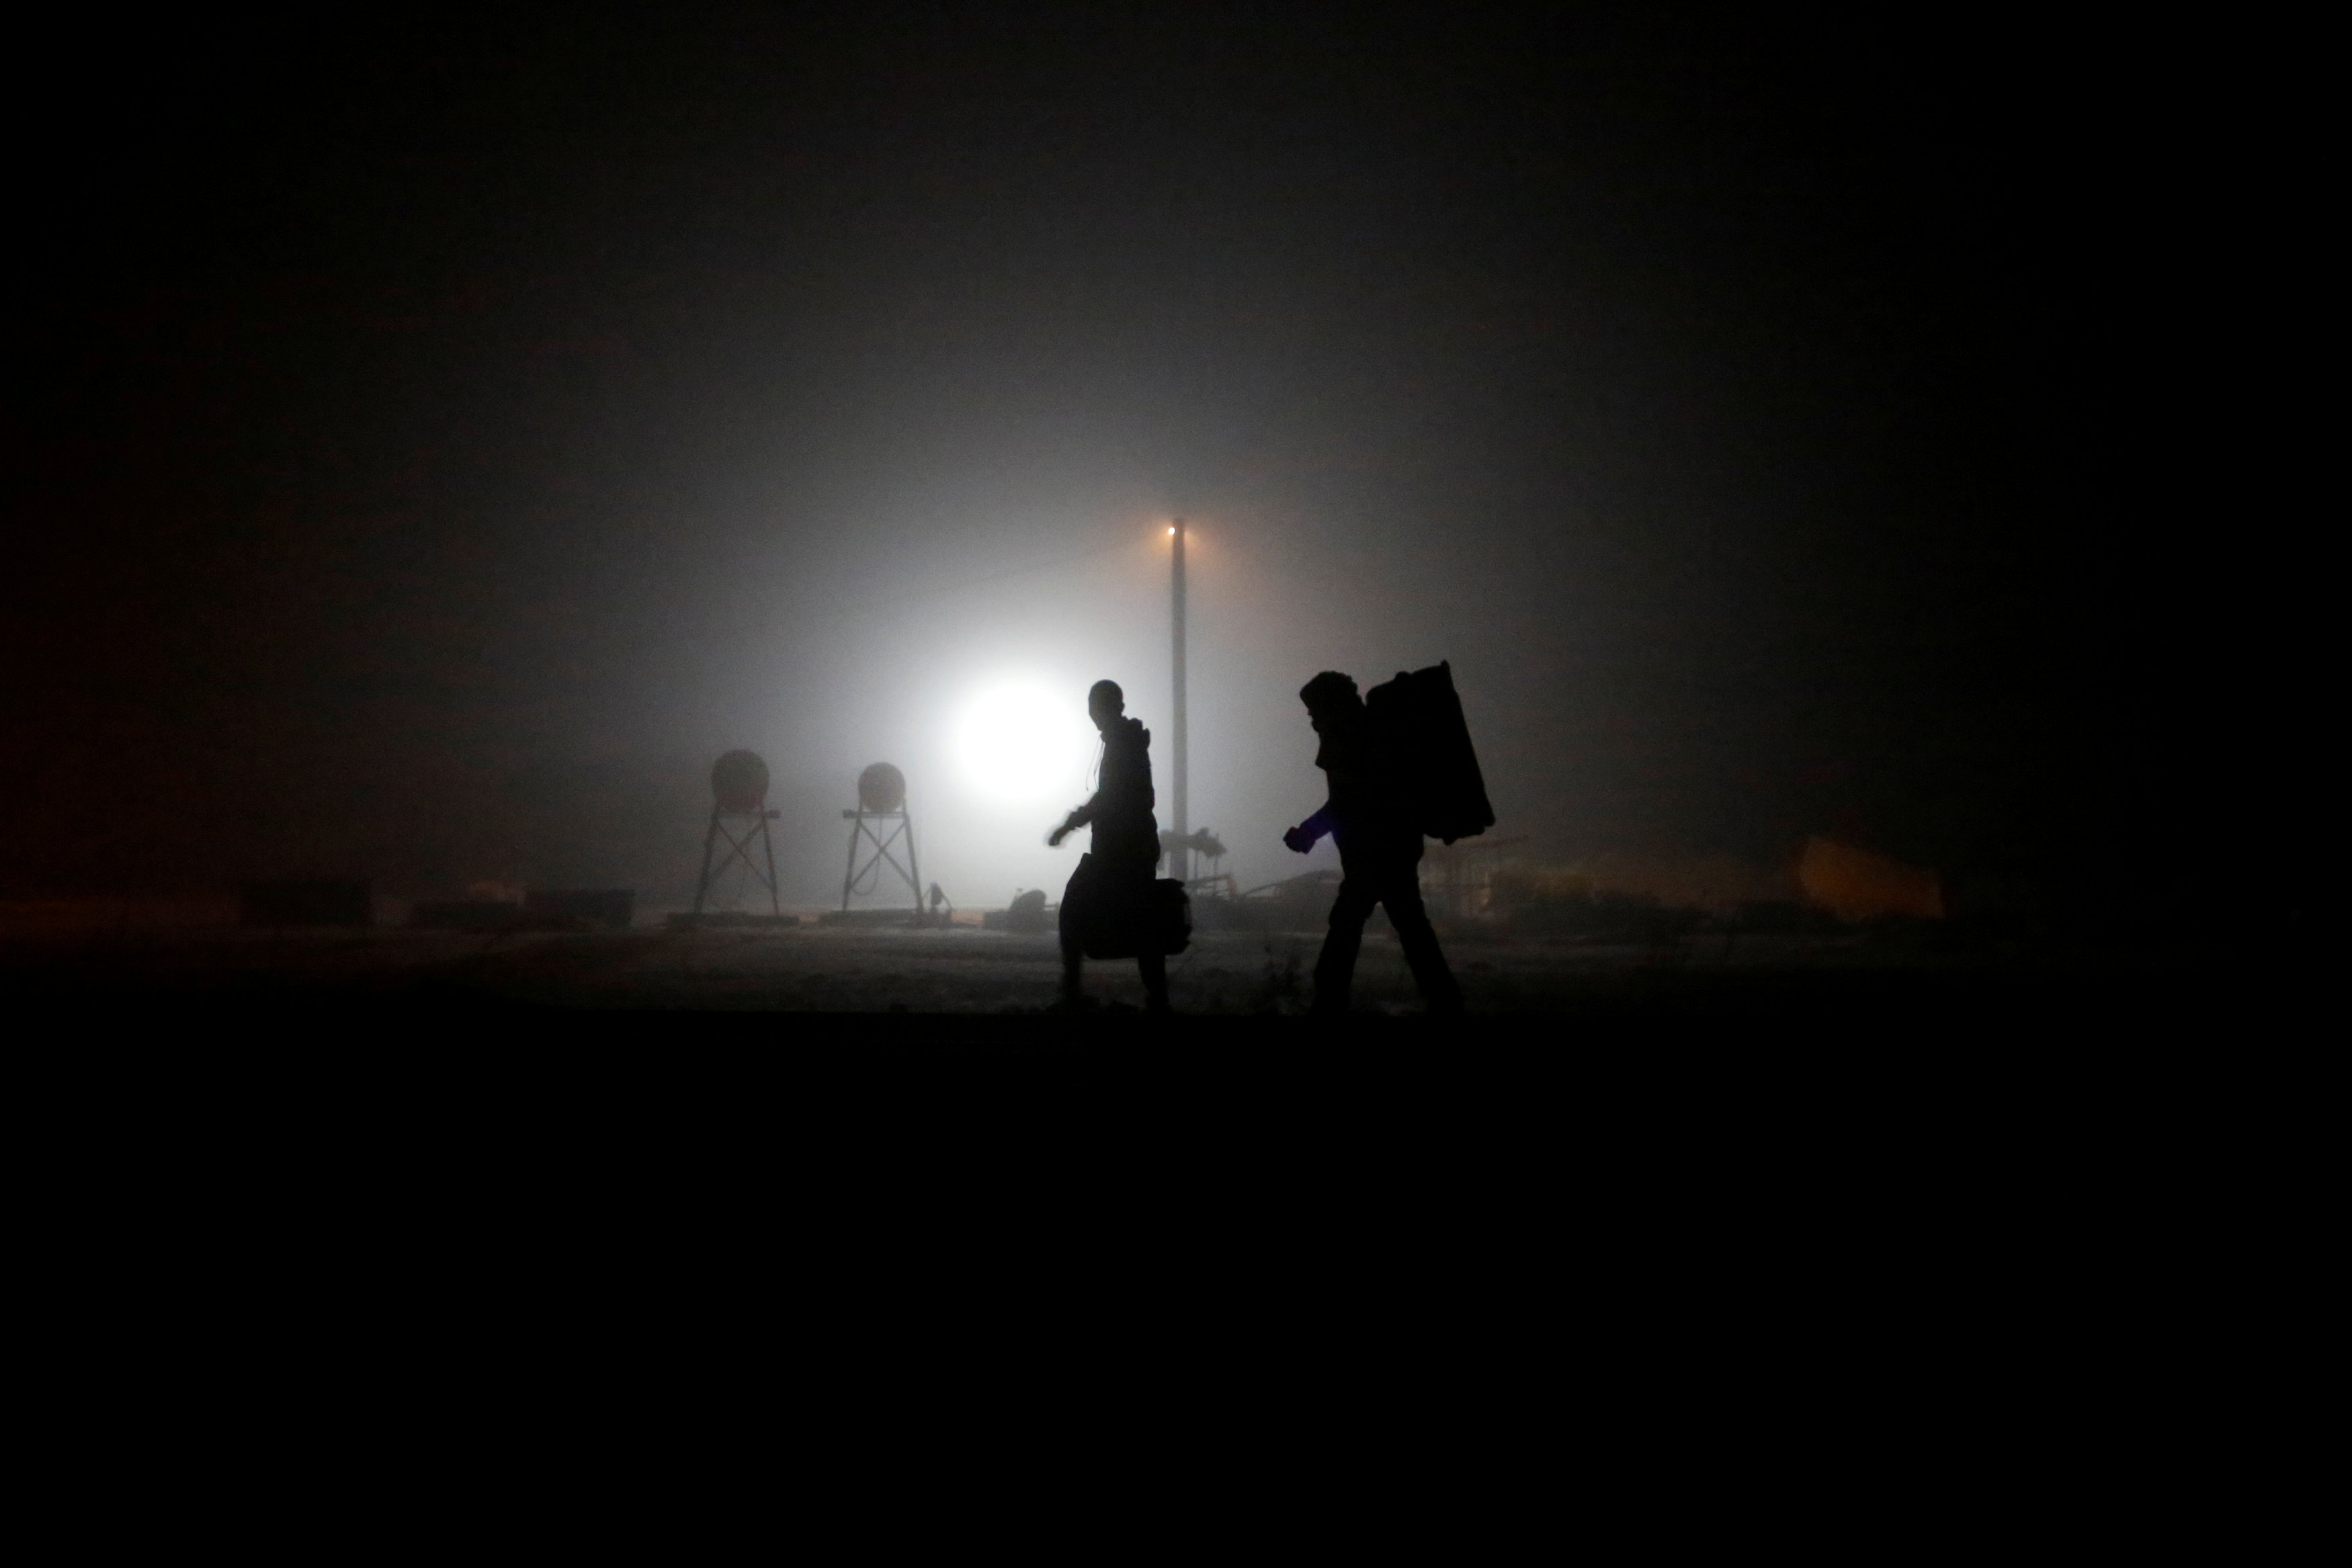 FILE PHOTO: A group of migrants who said they were from Djibouti and Somalia walk along railway tracks after crossing the Canada-U.S. border in Emerson, Manitoba, Canada, March 27, 2017. REUTERS/Chris Wattie/File Photo